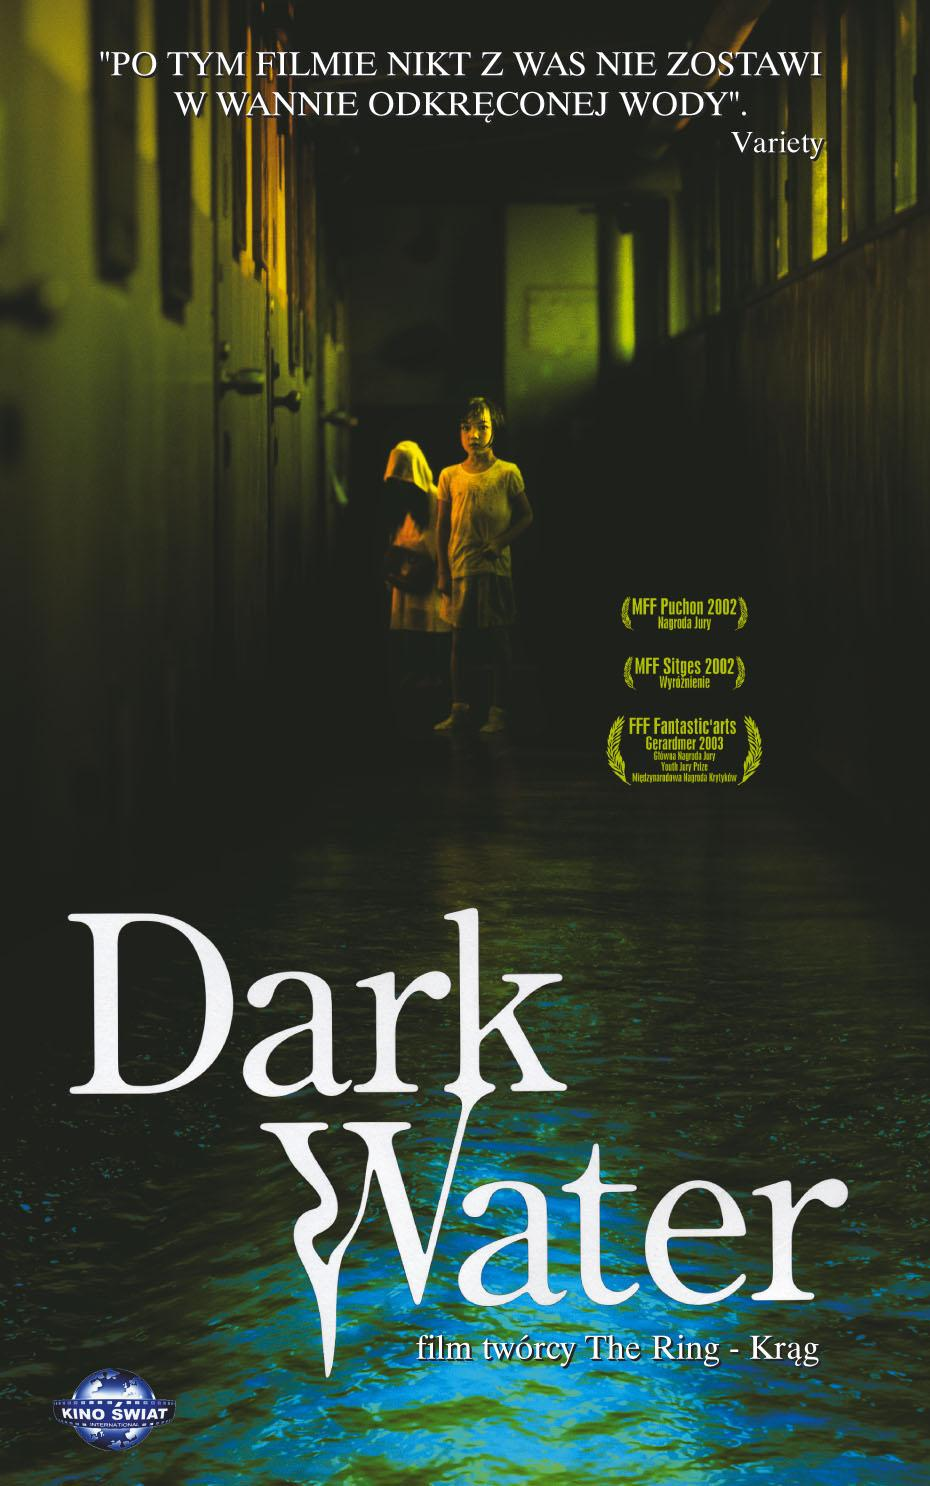 http://ddata.over-blog.com/xxxyyy/0/31/24/18/affiches/dark-water_1.jpg